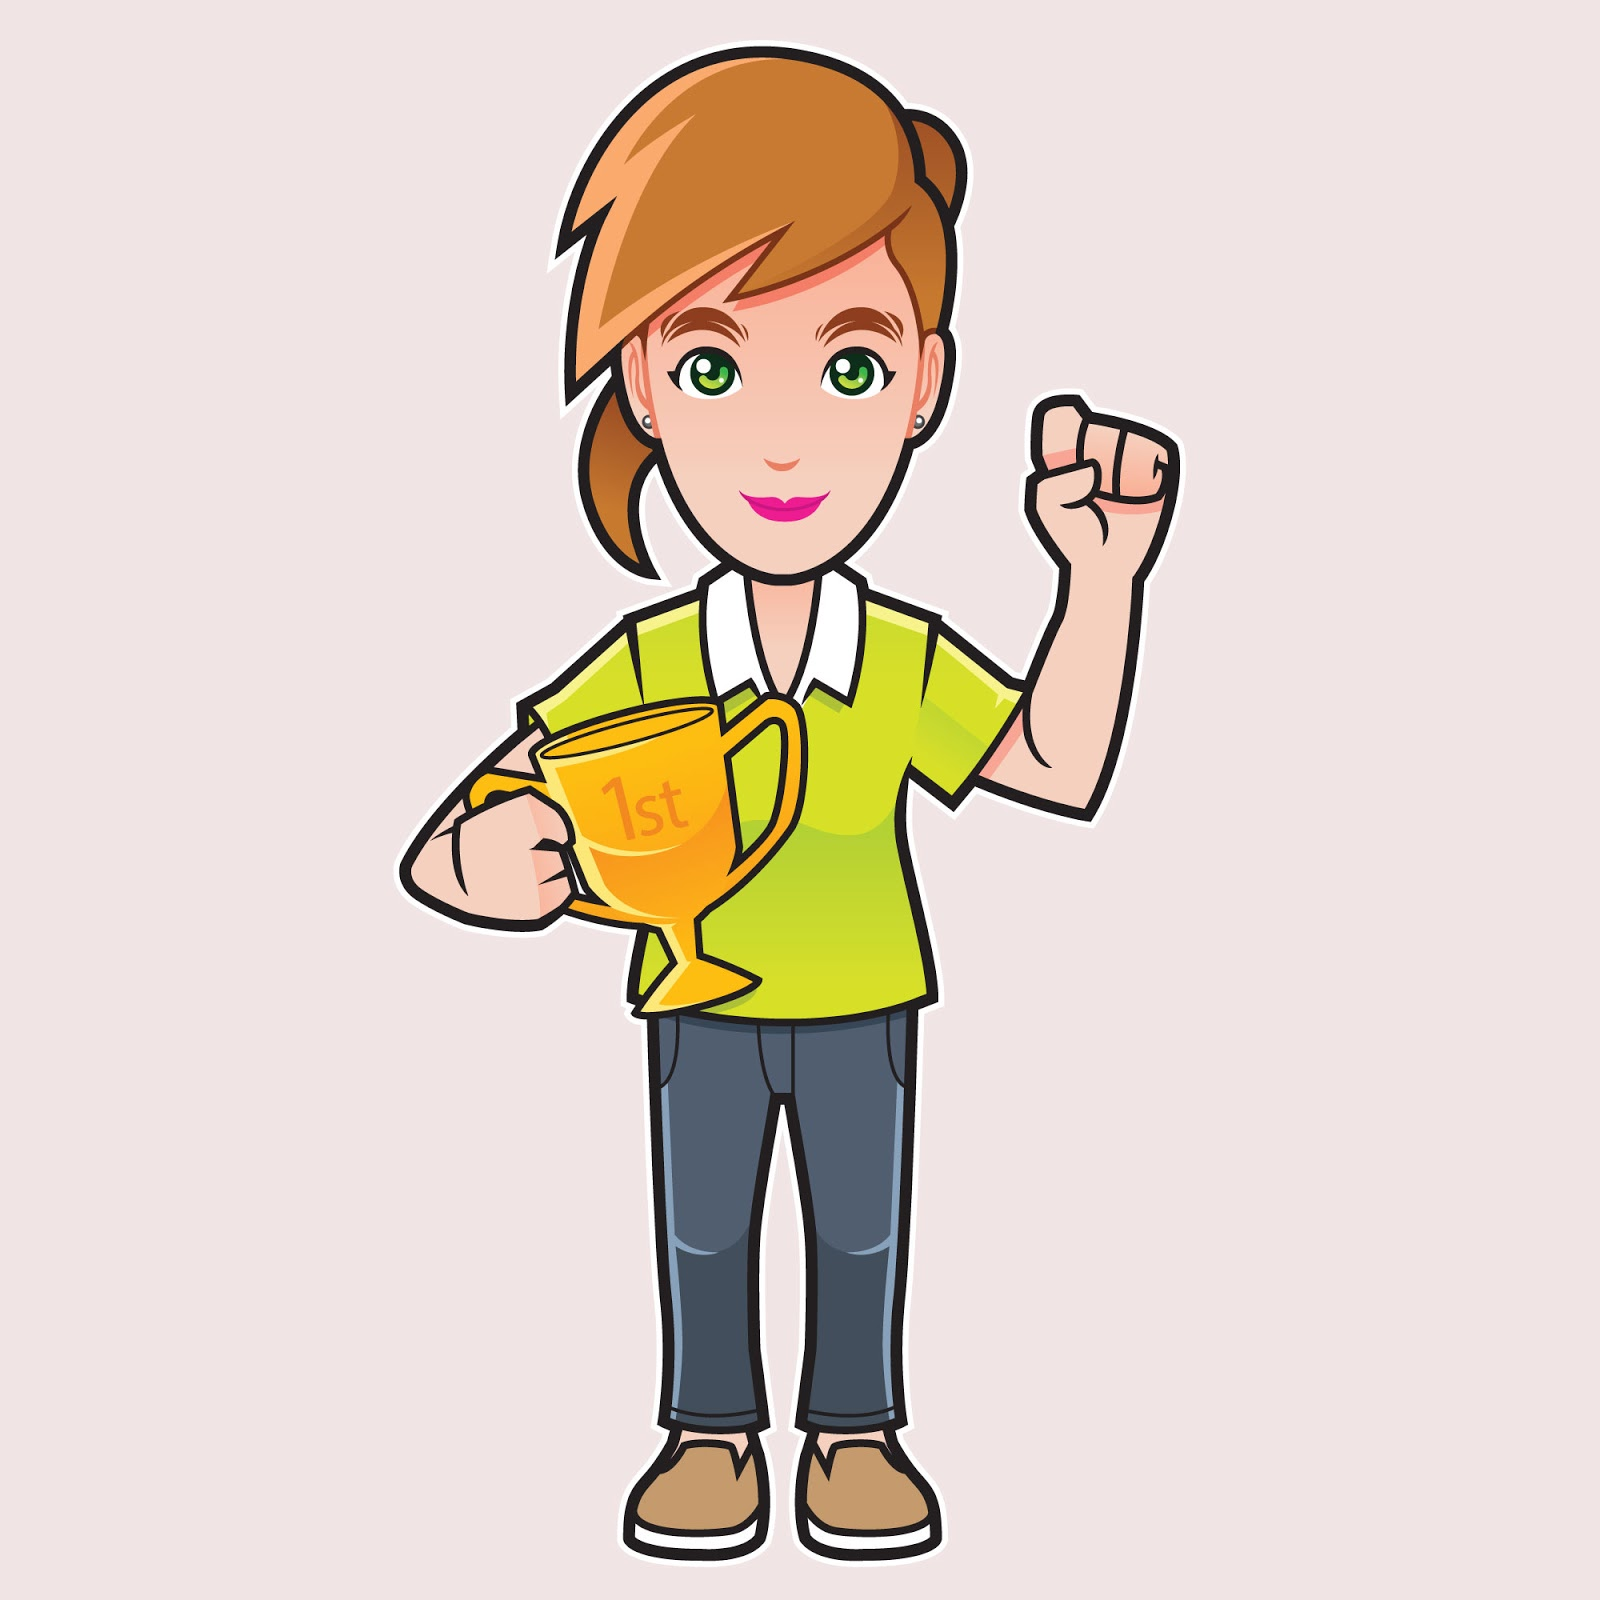 Champion Girl Free Download Vector CDR, AI, EPS and PNG Formats